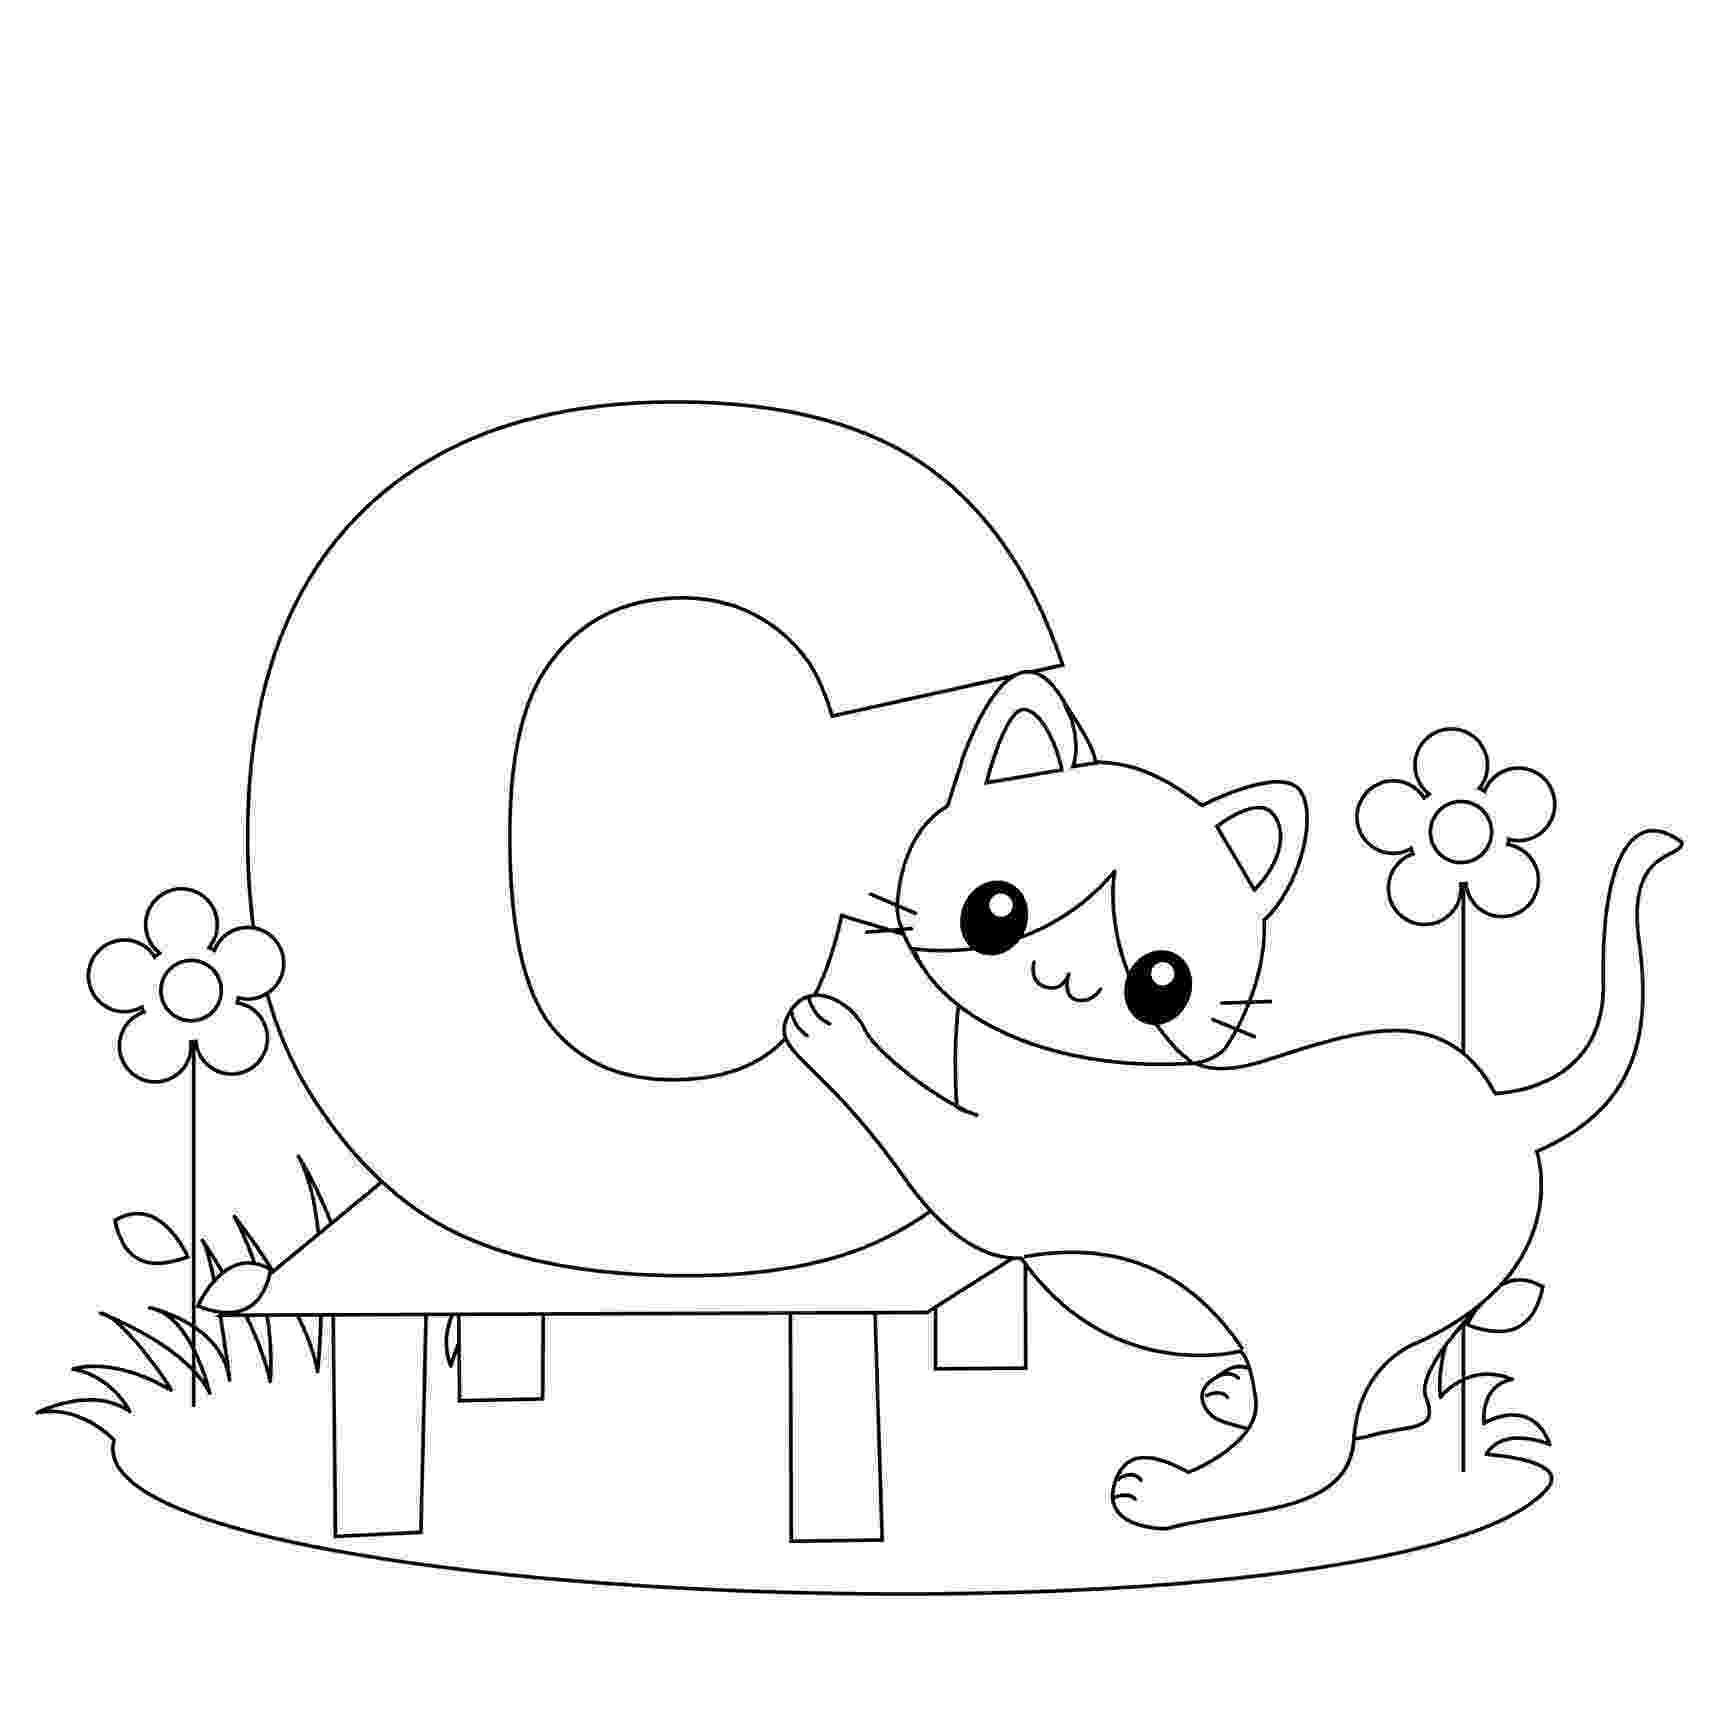 alphabet coloring english alphabet coloring pages judy havrilla coloring alphabet